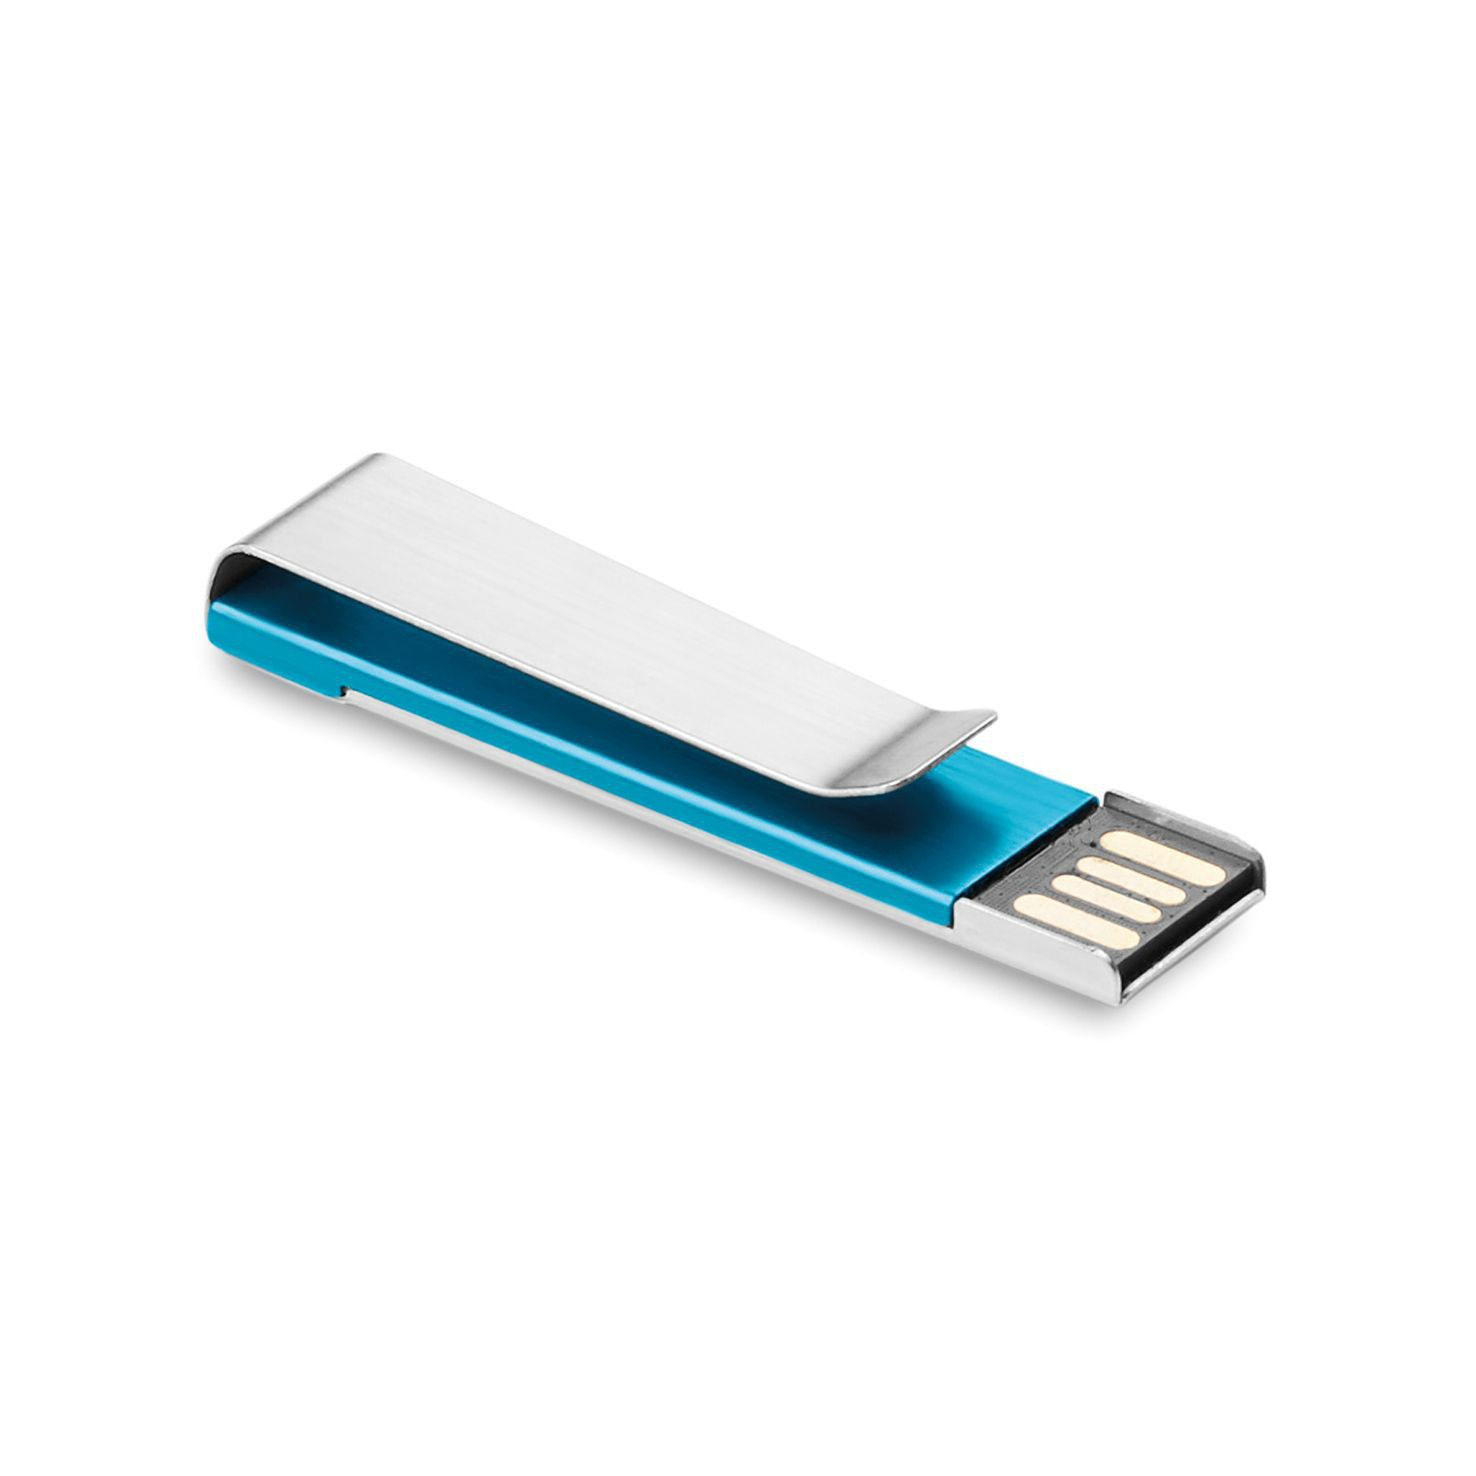 Blauwe USB stick | Metalen clip | 16GB